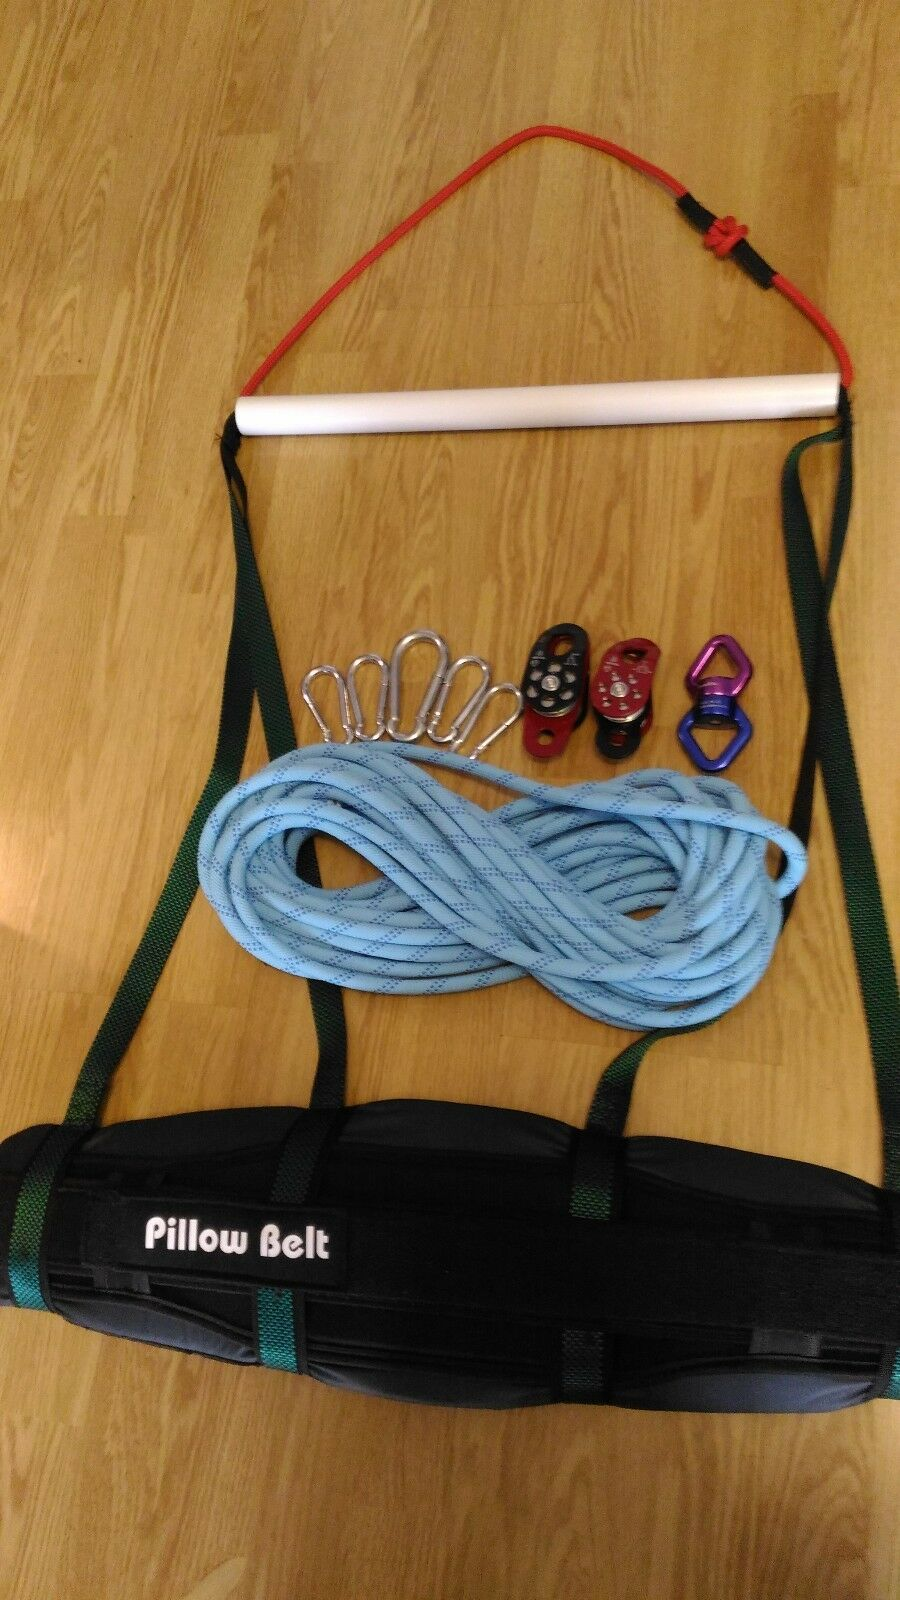 Harness strap,Pillow Belt set for figure skating -  off ice  we supply the best